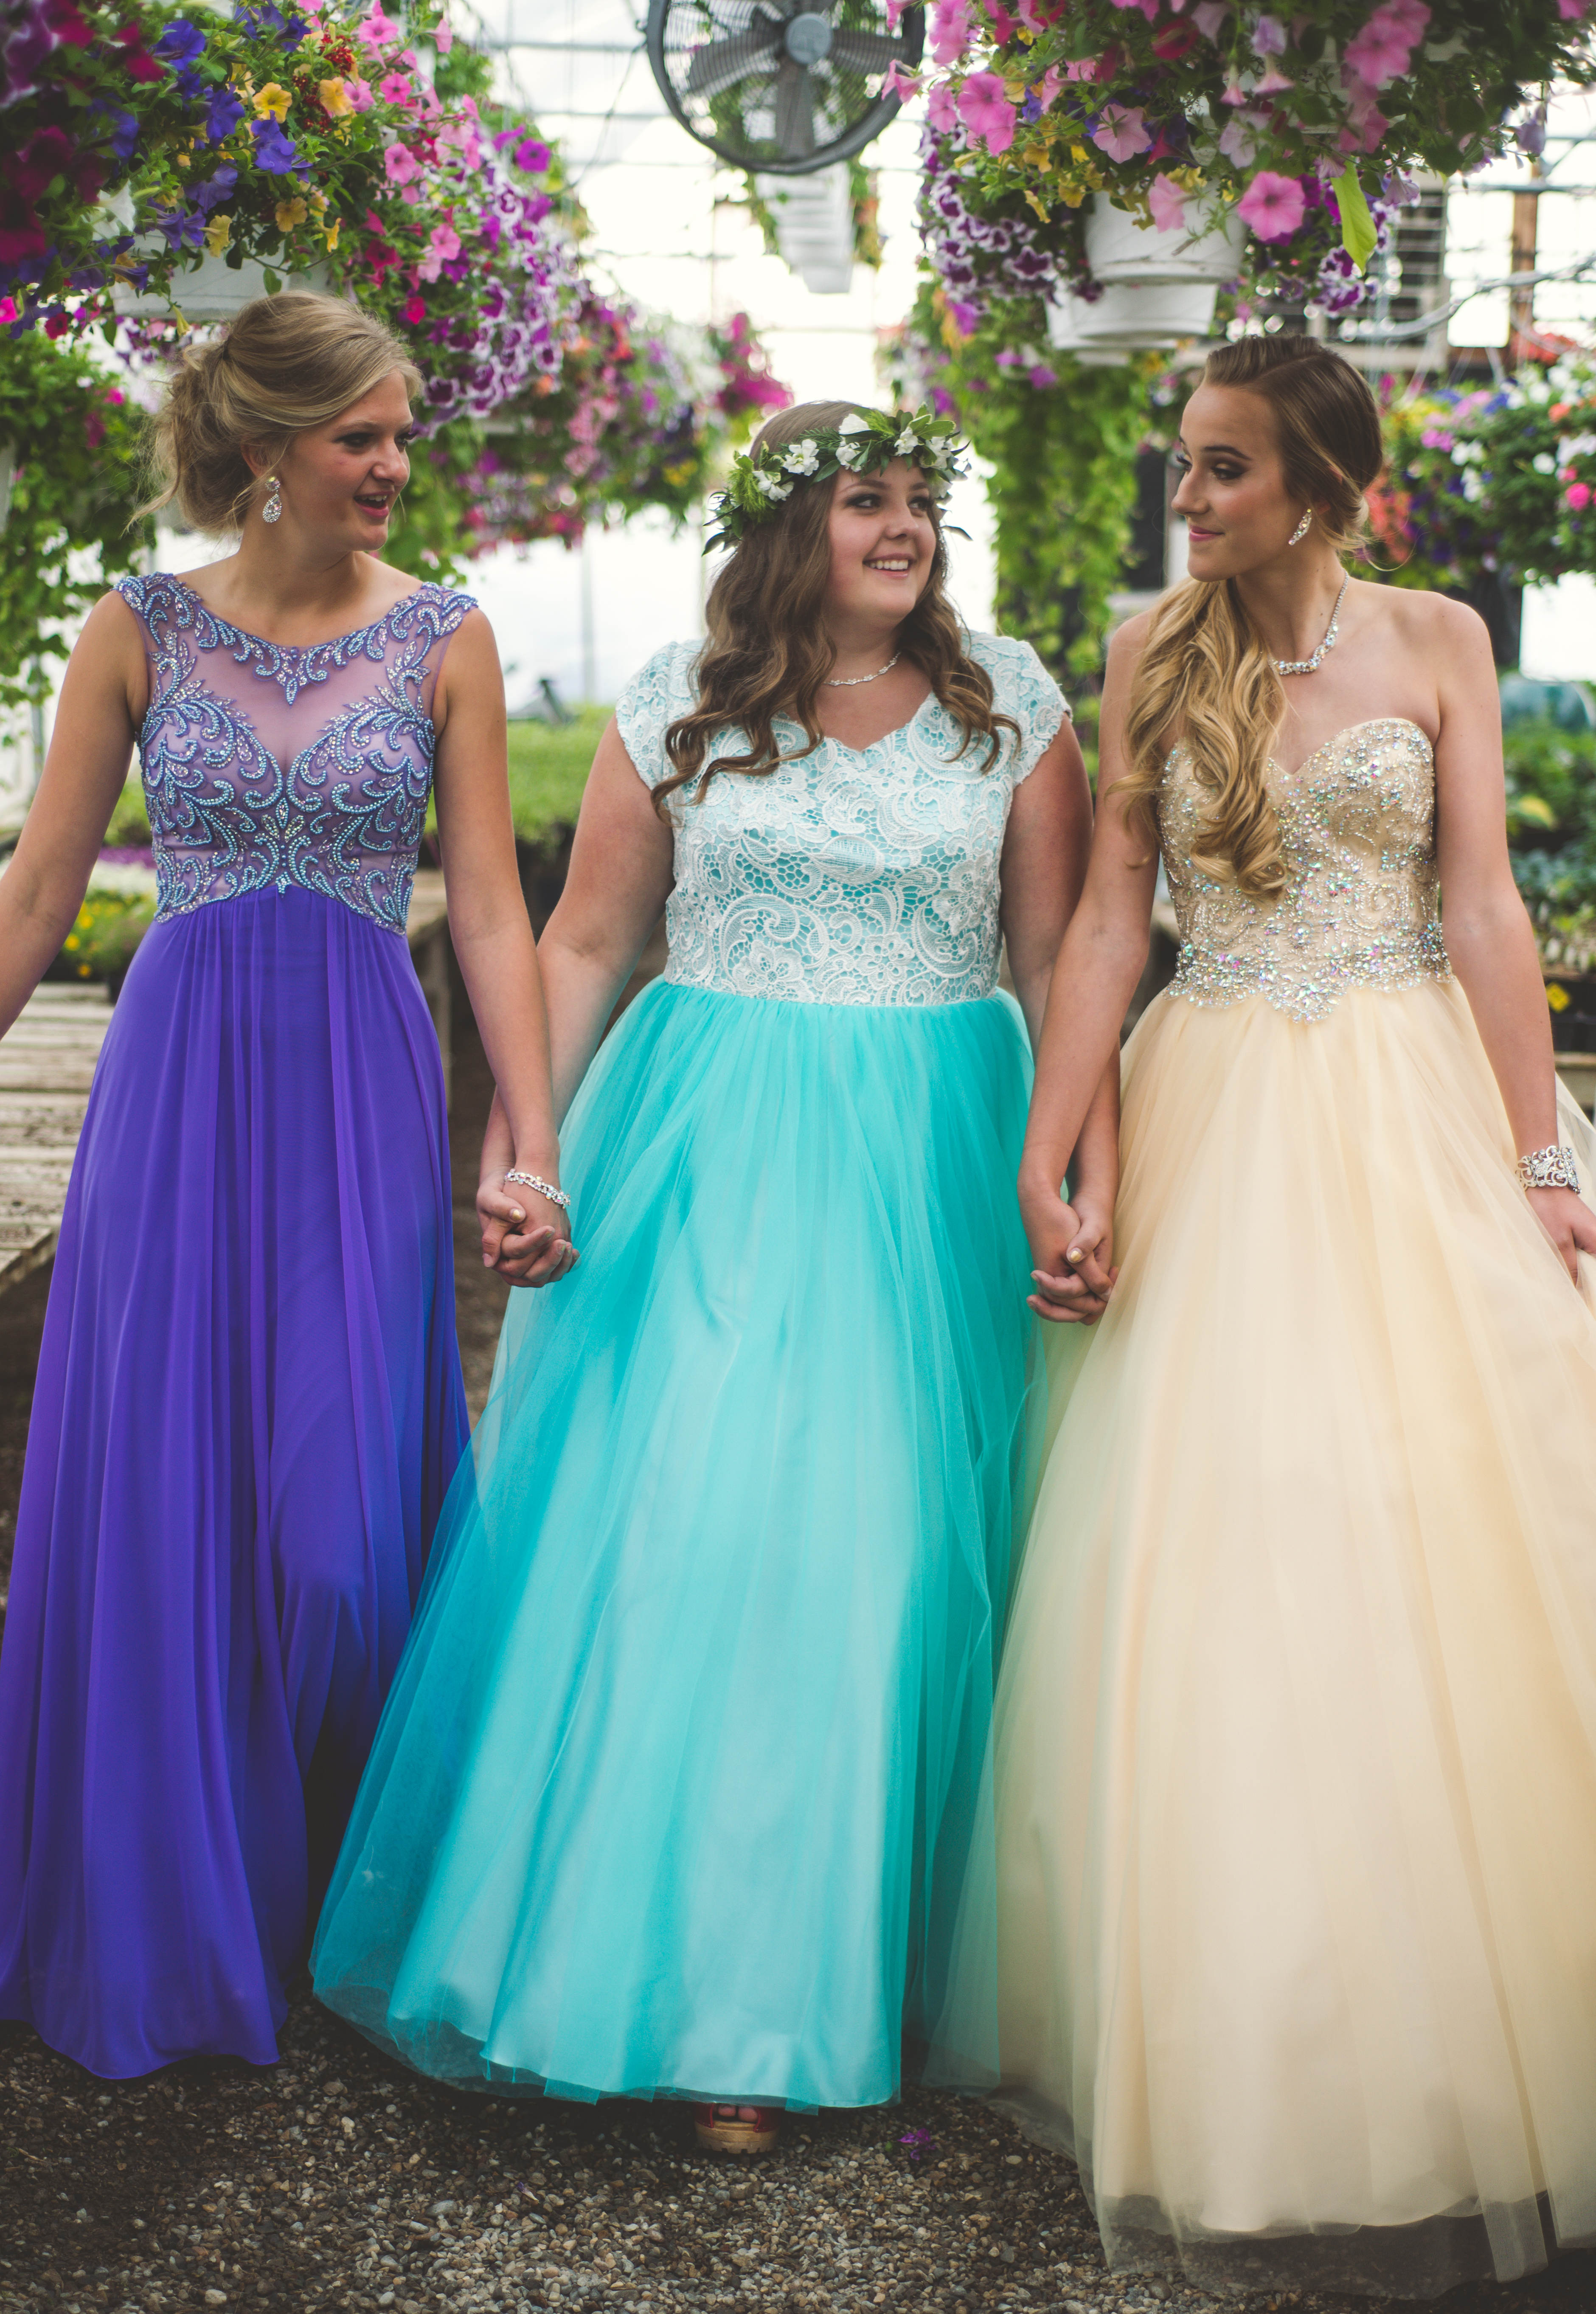 Spring Blooms:: Spring 2016 Prom Styled Shoot - Petals and Promises ...